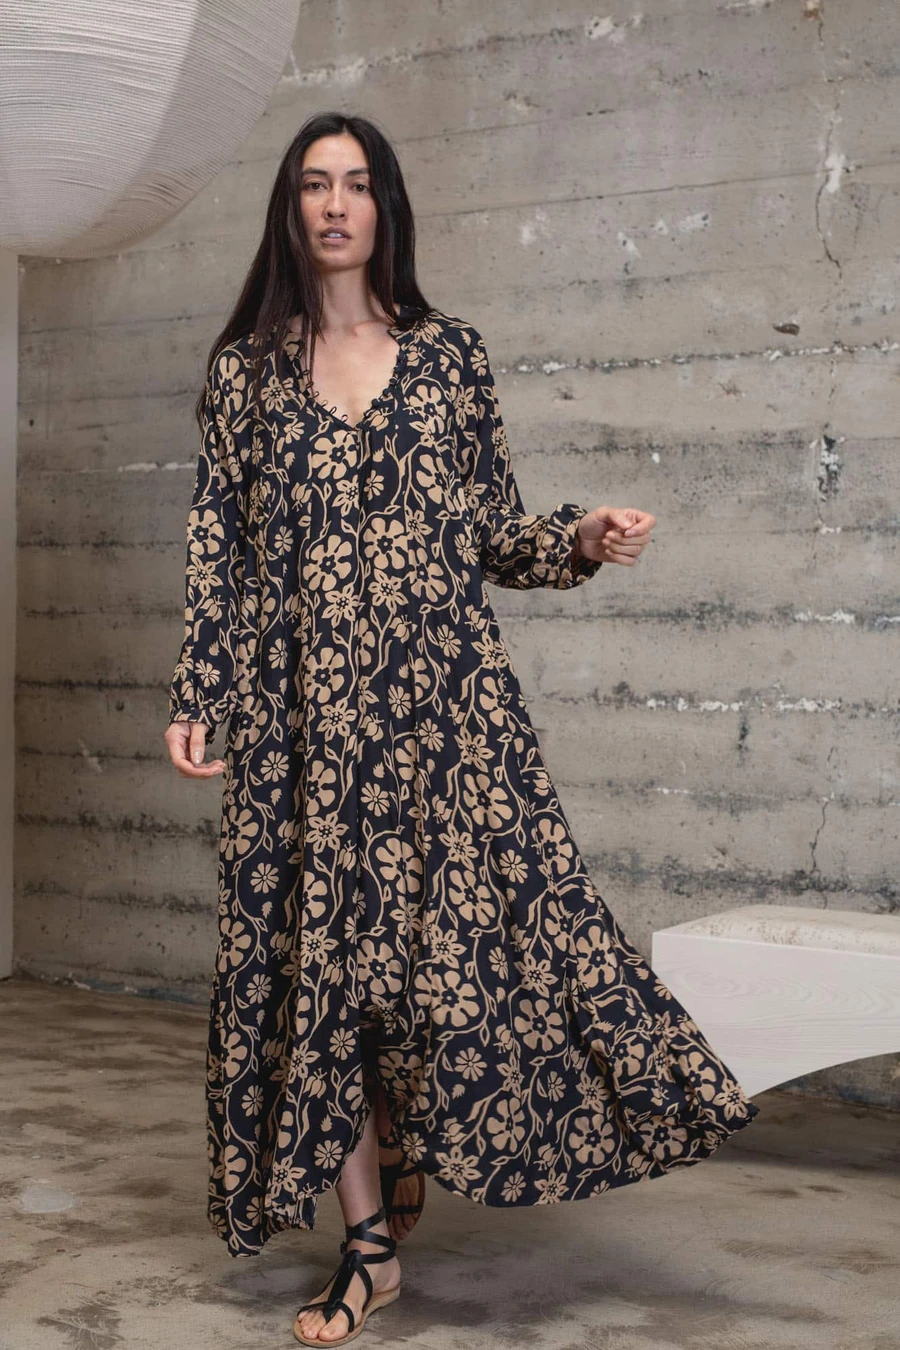 Shop Natalie Martin Fiore Maxi Dress At Bird Brooklyn Free Shipping In Usa For Orders Over 250 Offering The Best In Establ Maxi Dress Maxi Long Sleeve Dress [ 1350 x 900 Pixel ]